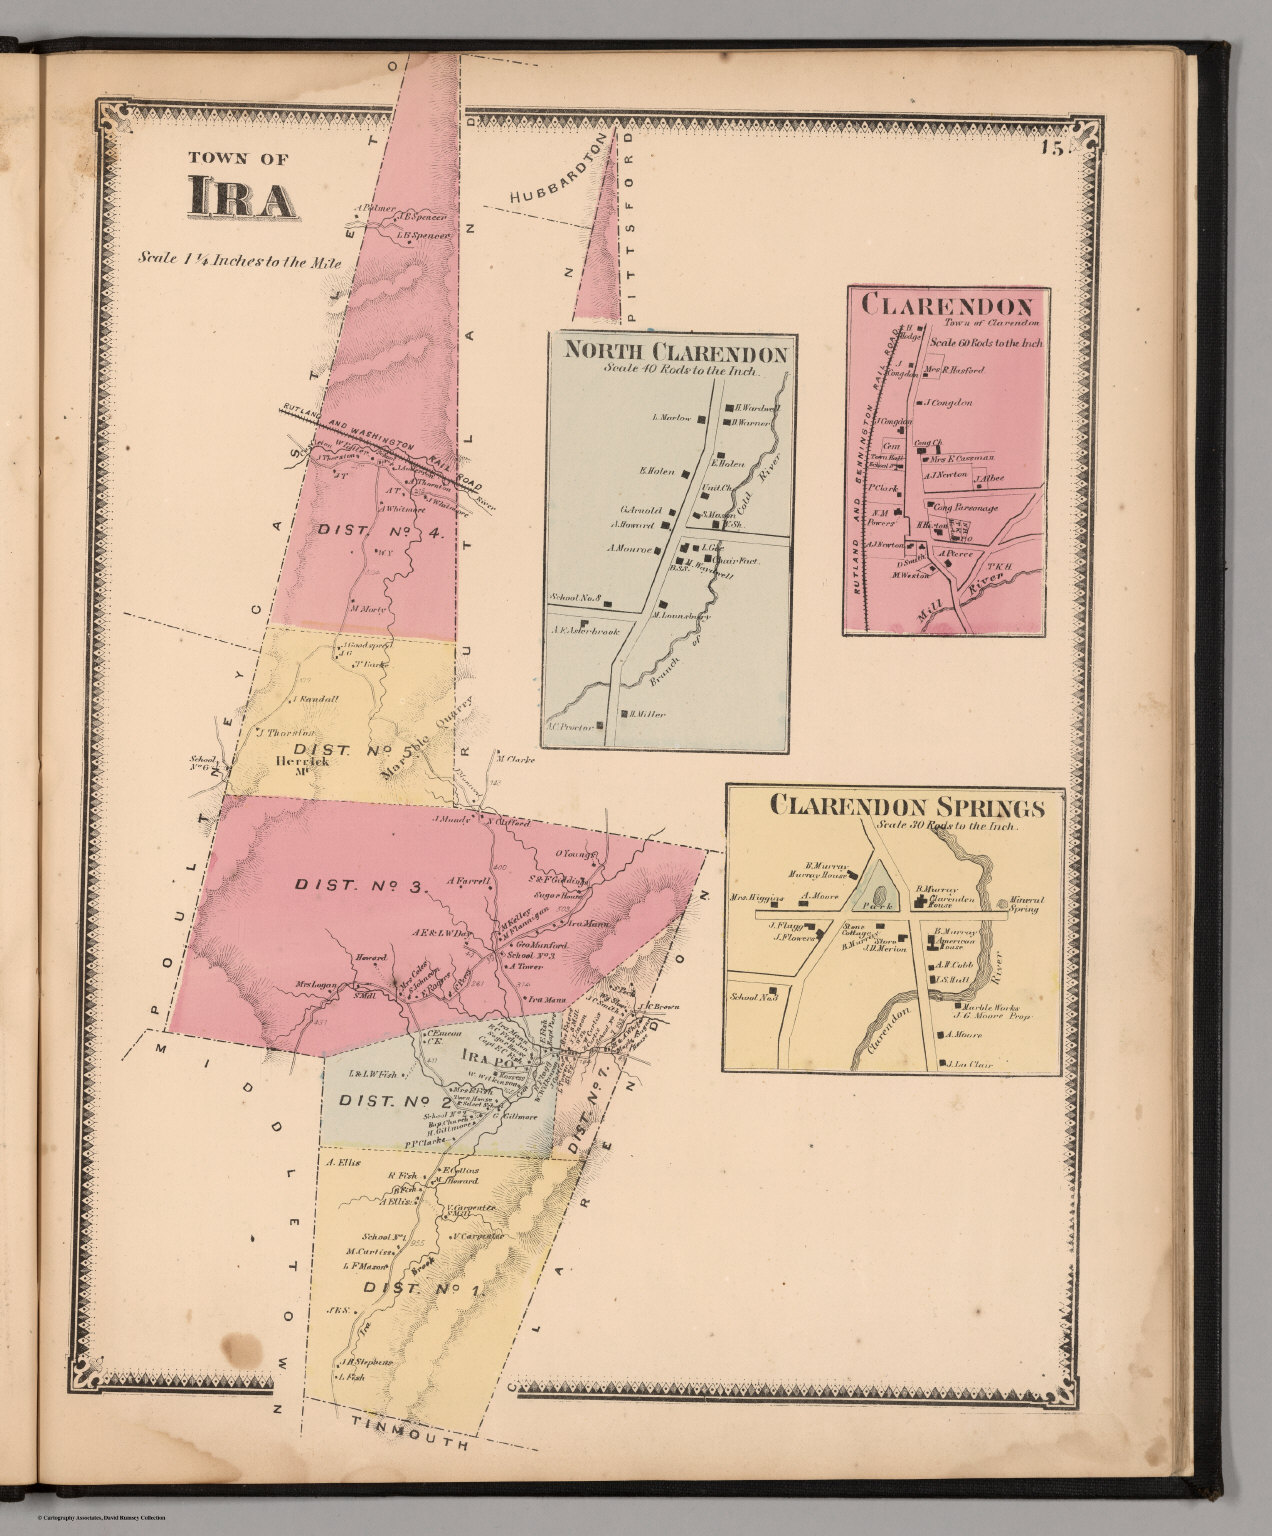 Town of Ira. (insets) North Clarendon. Clarendon, Town ofira town